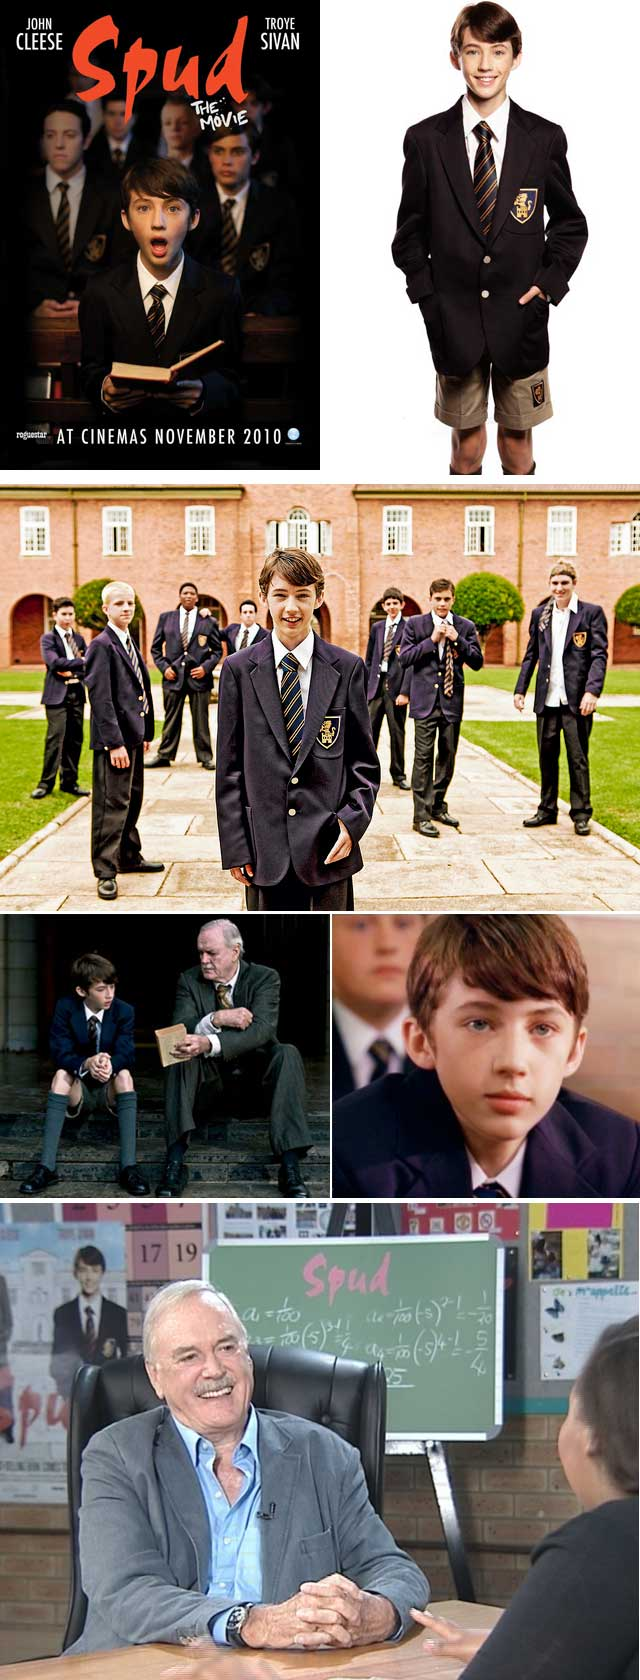 Top Billing interviews the cast of Spud the movie staring John Cleese and Troye Sivan